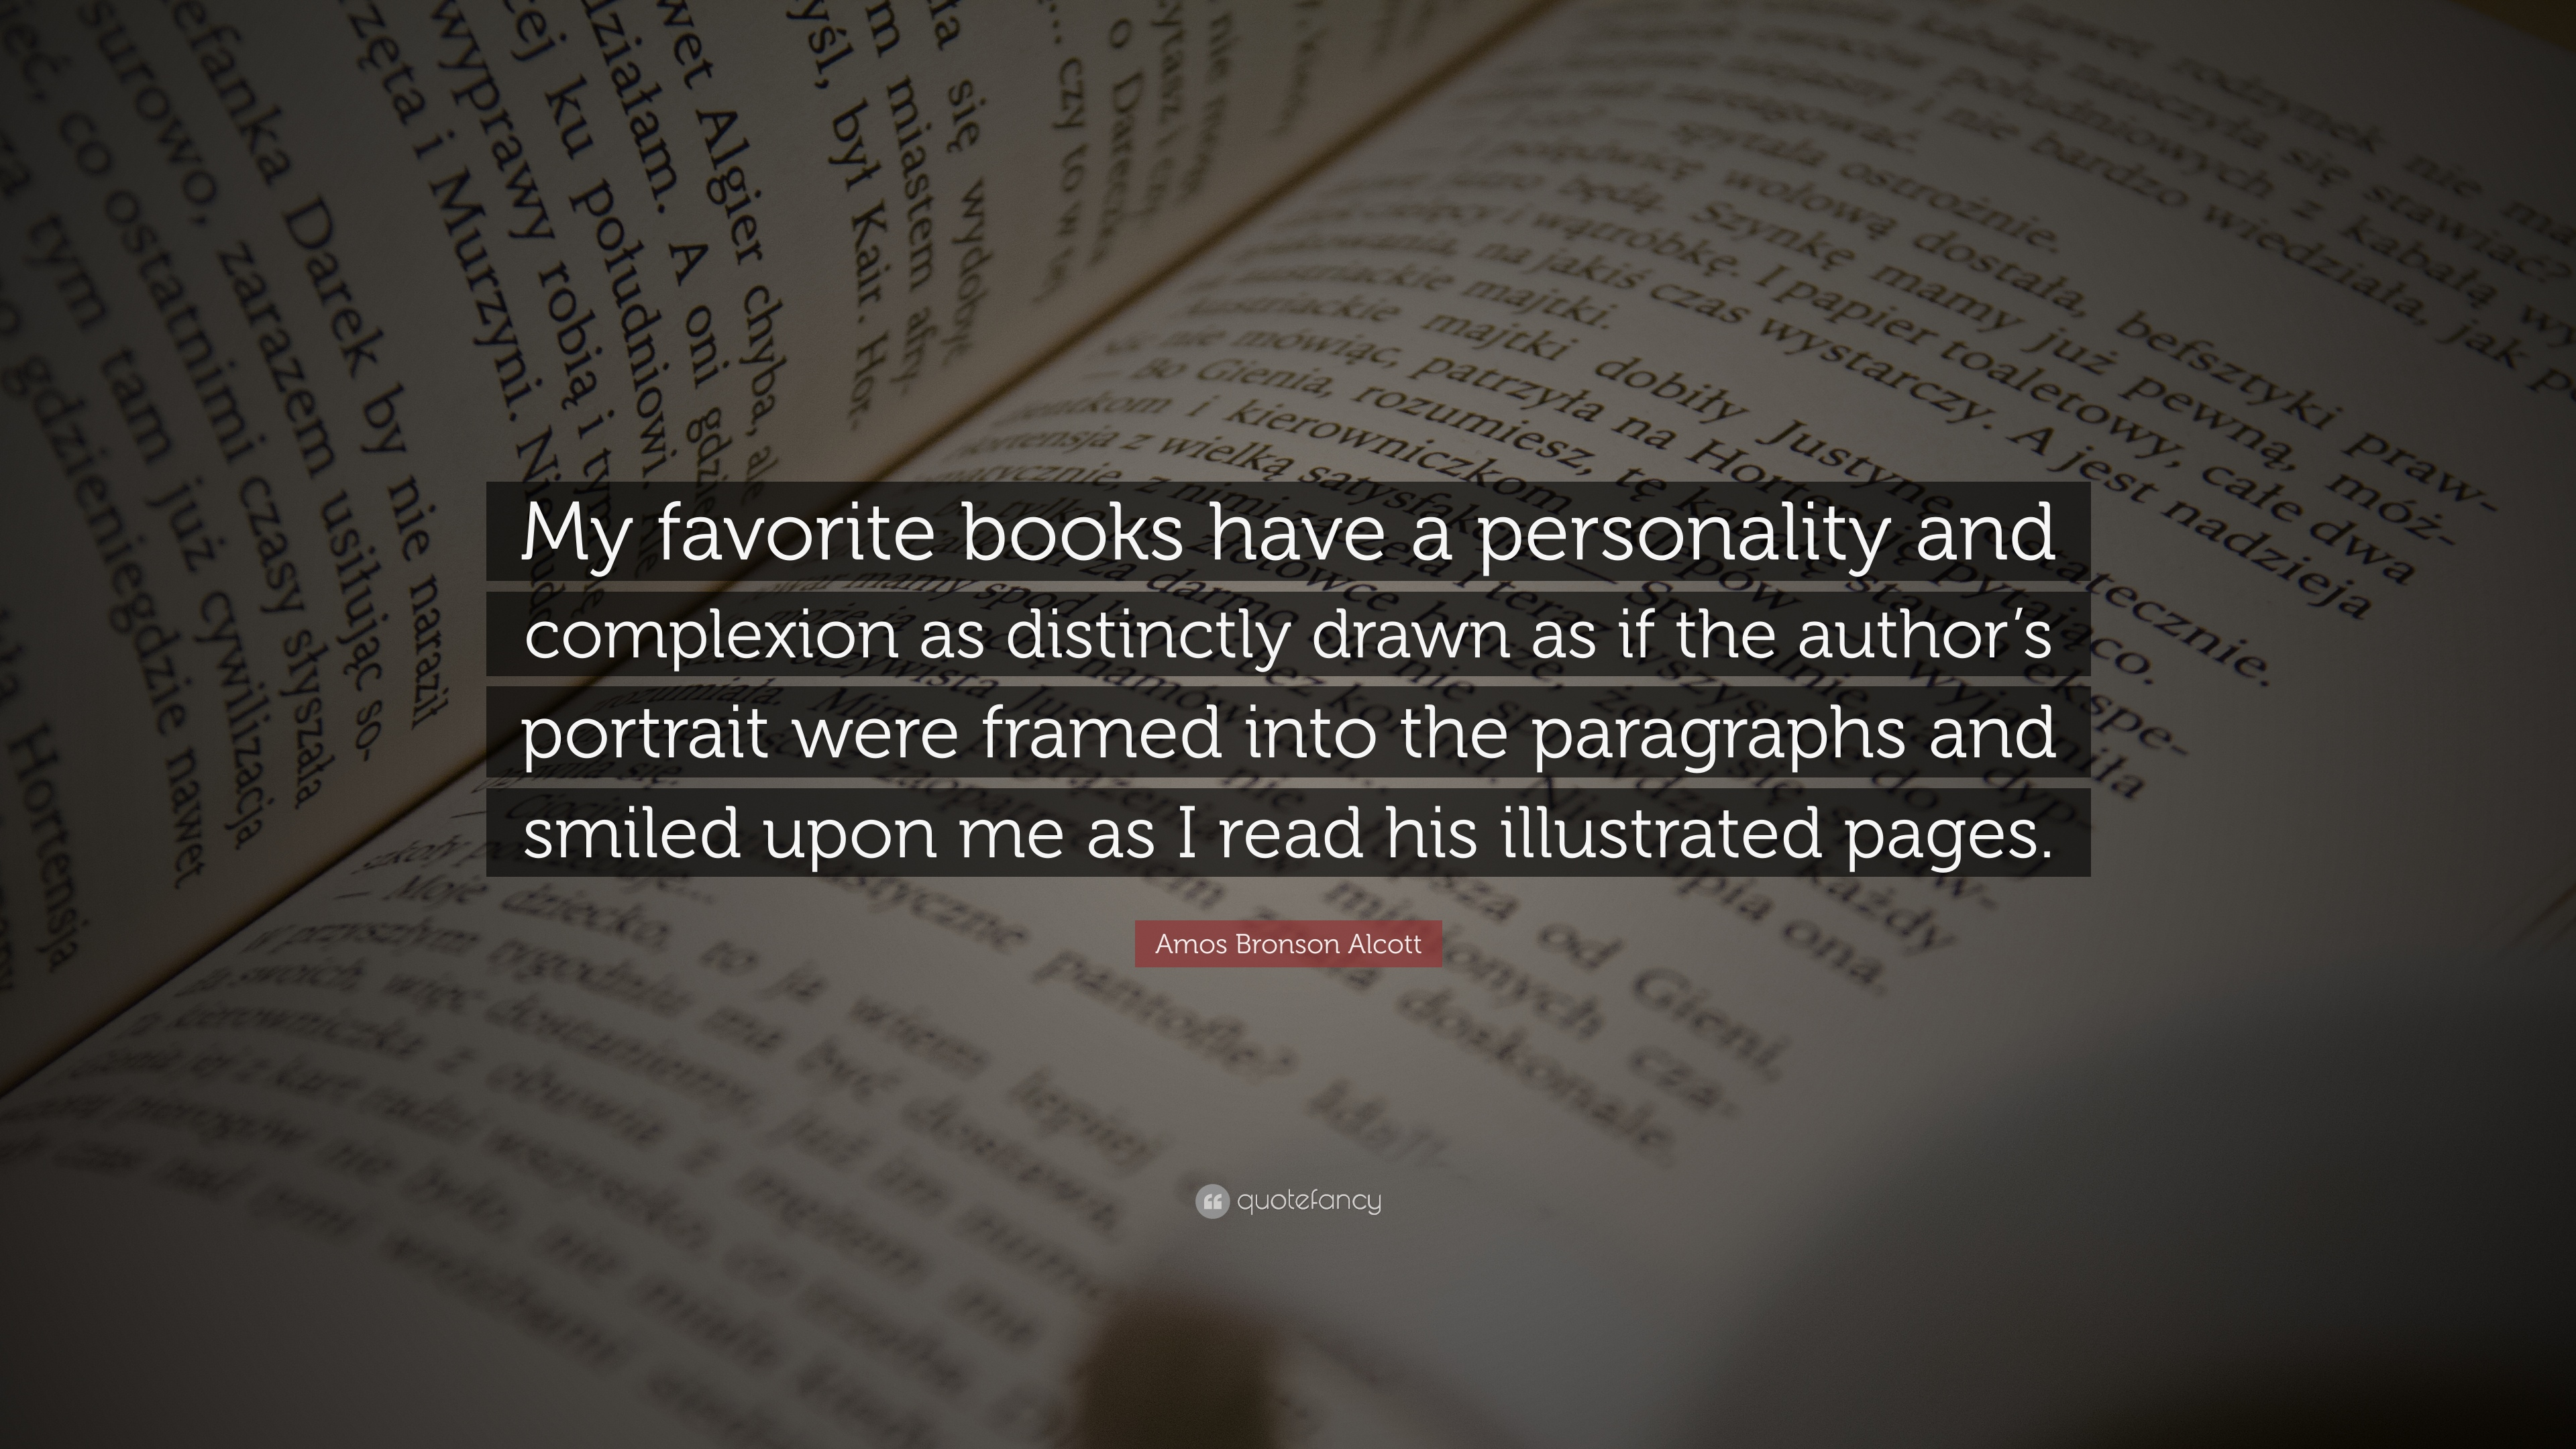 Drawn quote personality As books distinctly Quote: a